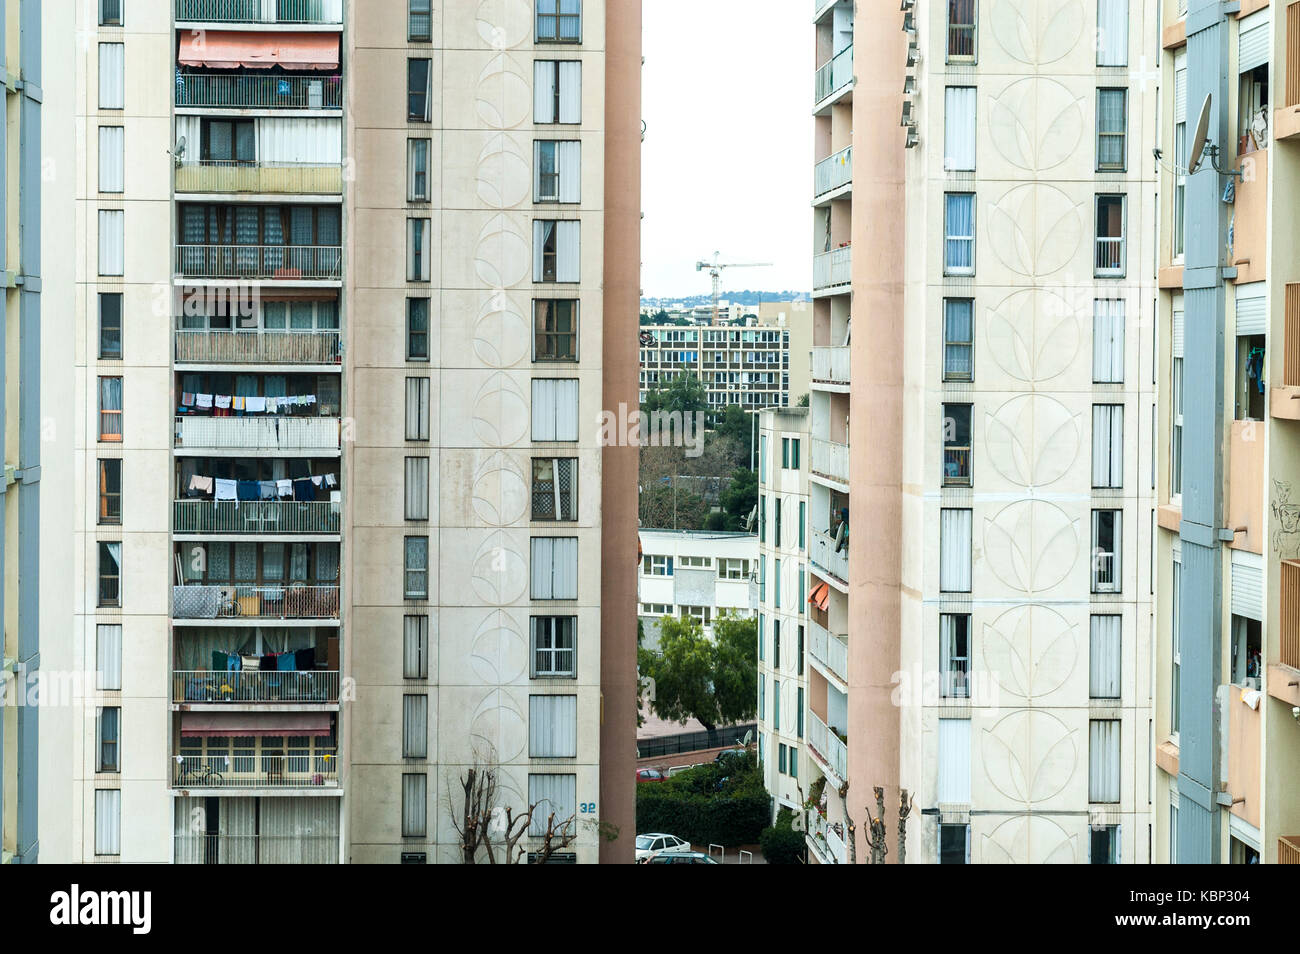 High rise building in the council estate named les MoulinS in Nice, France - Stock Image